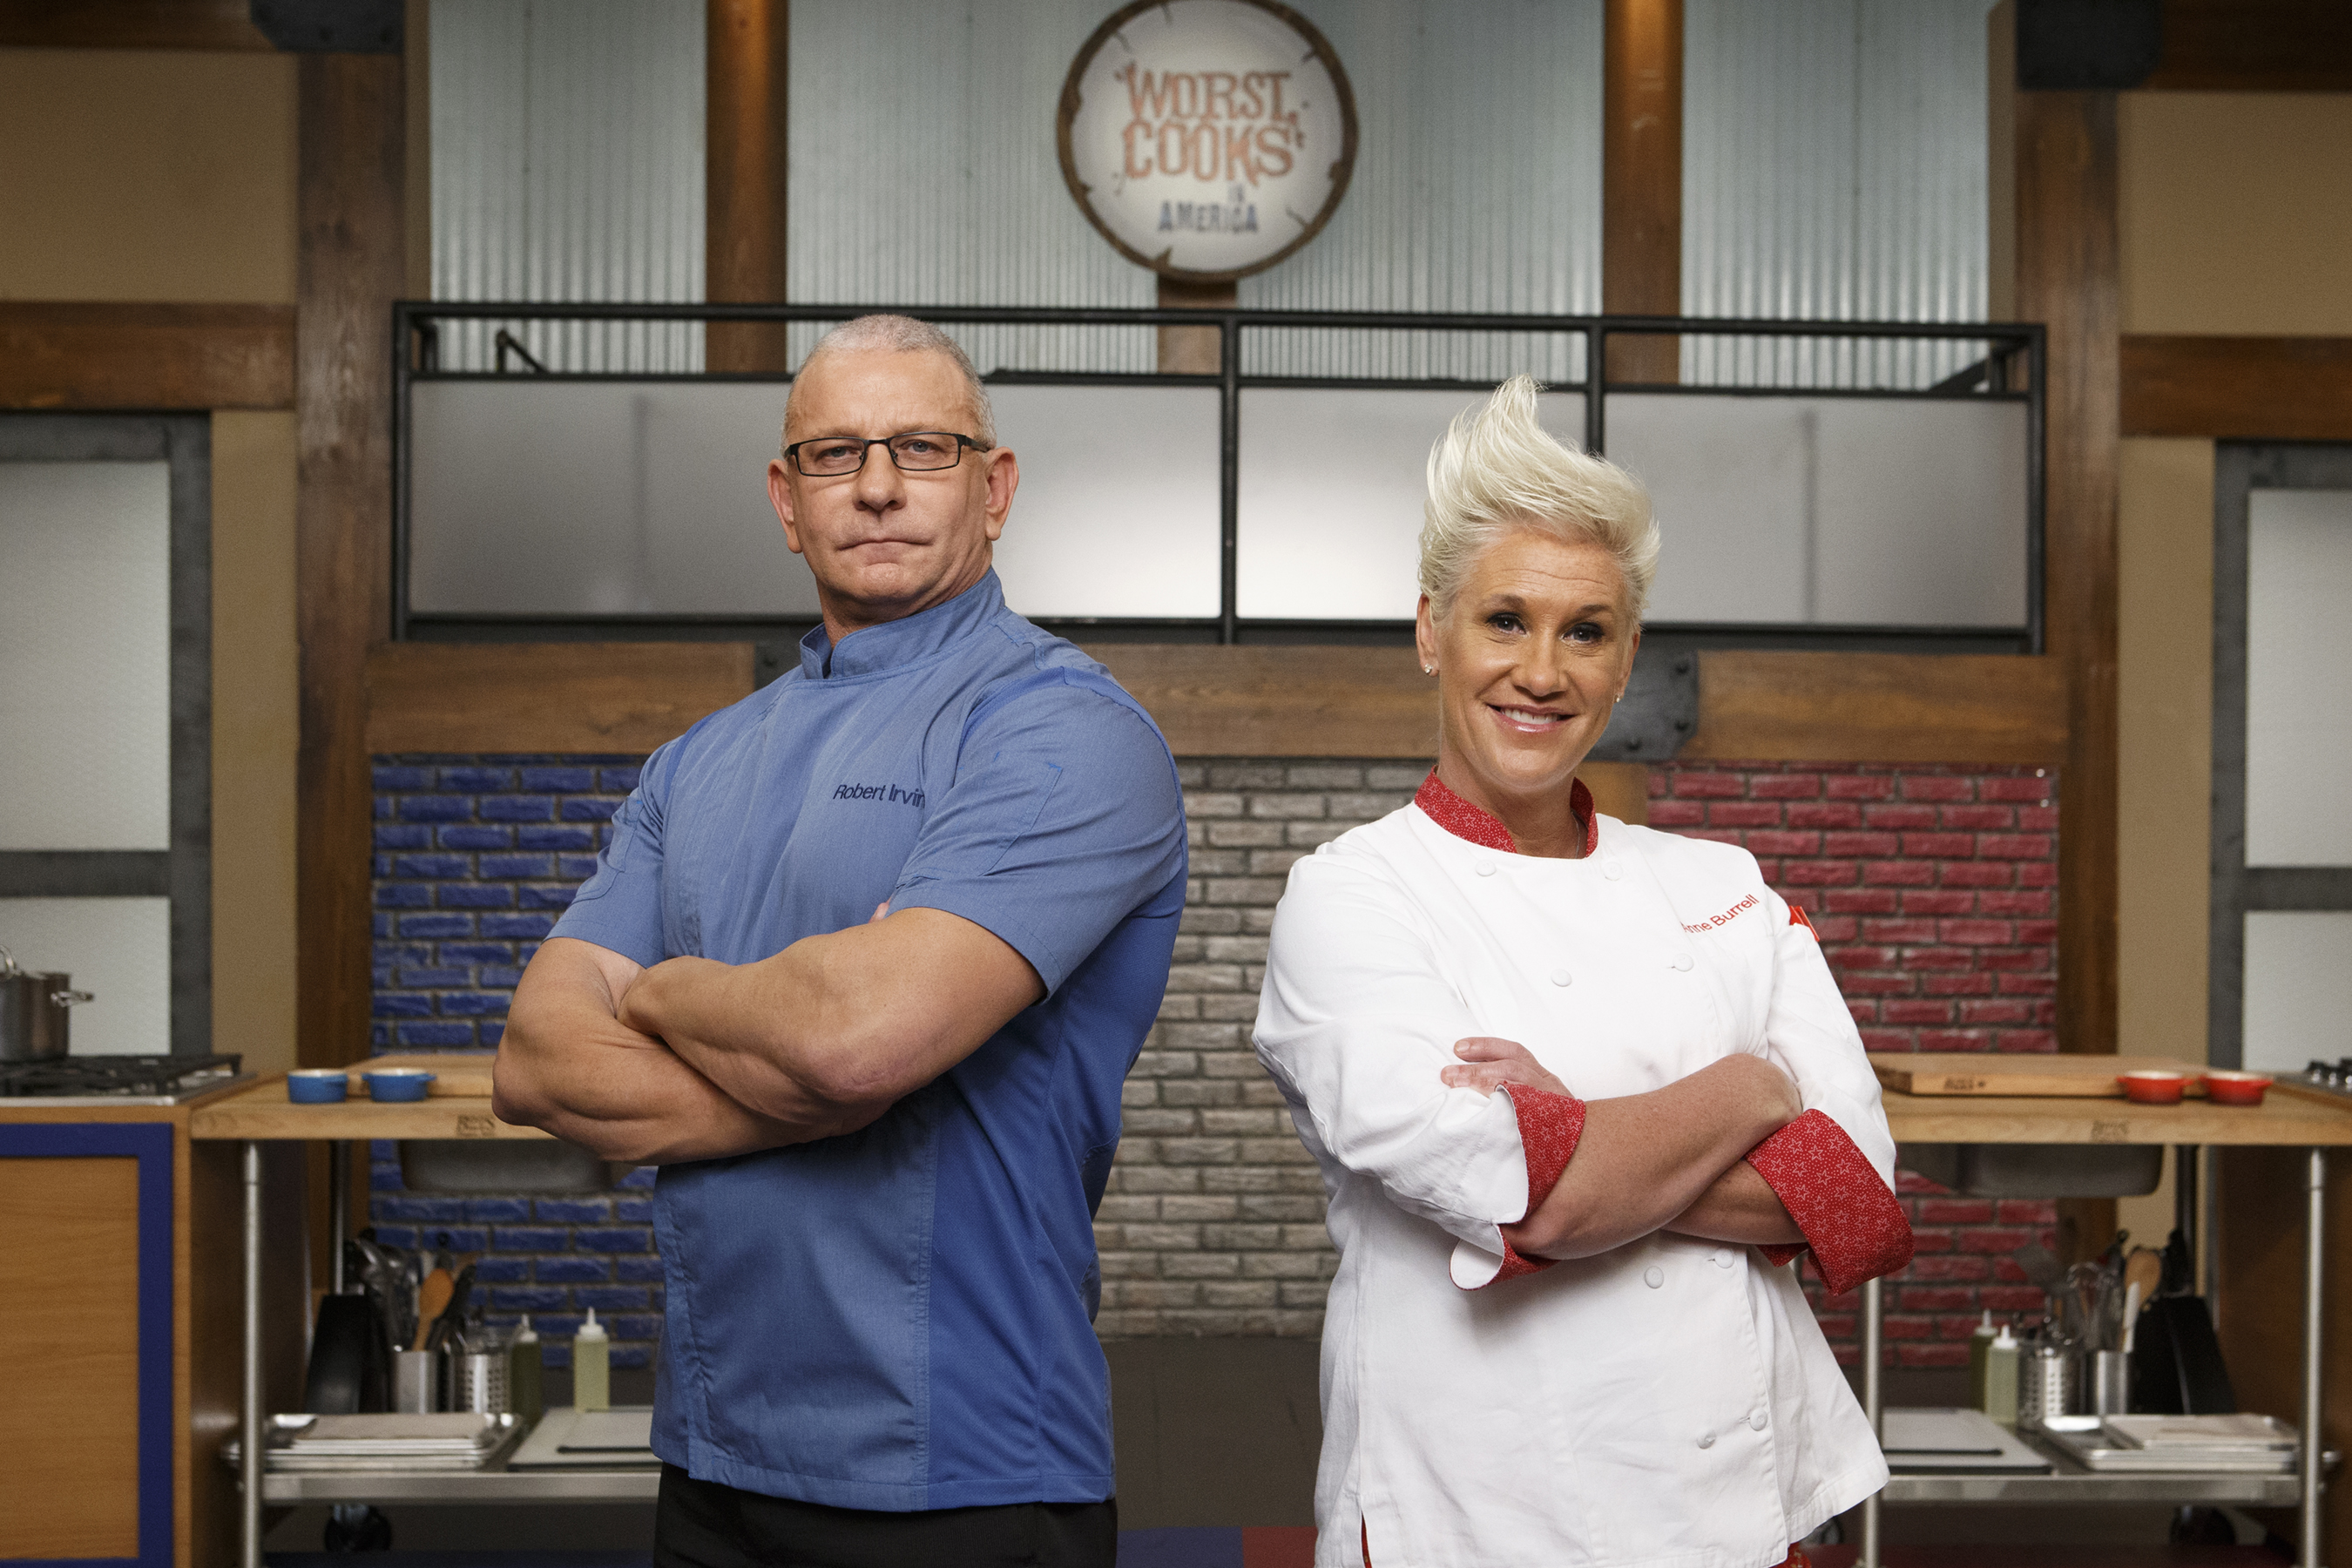 Robert Irvine and Anne Burrell pose together on Food Network's Worst Cooks in America